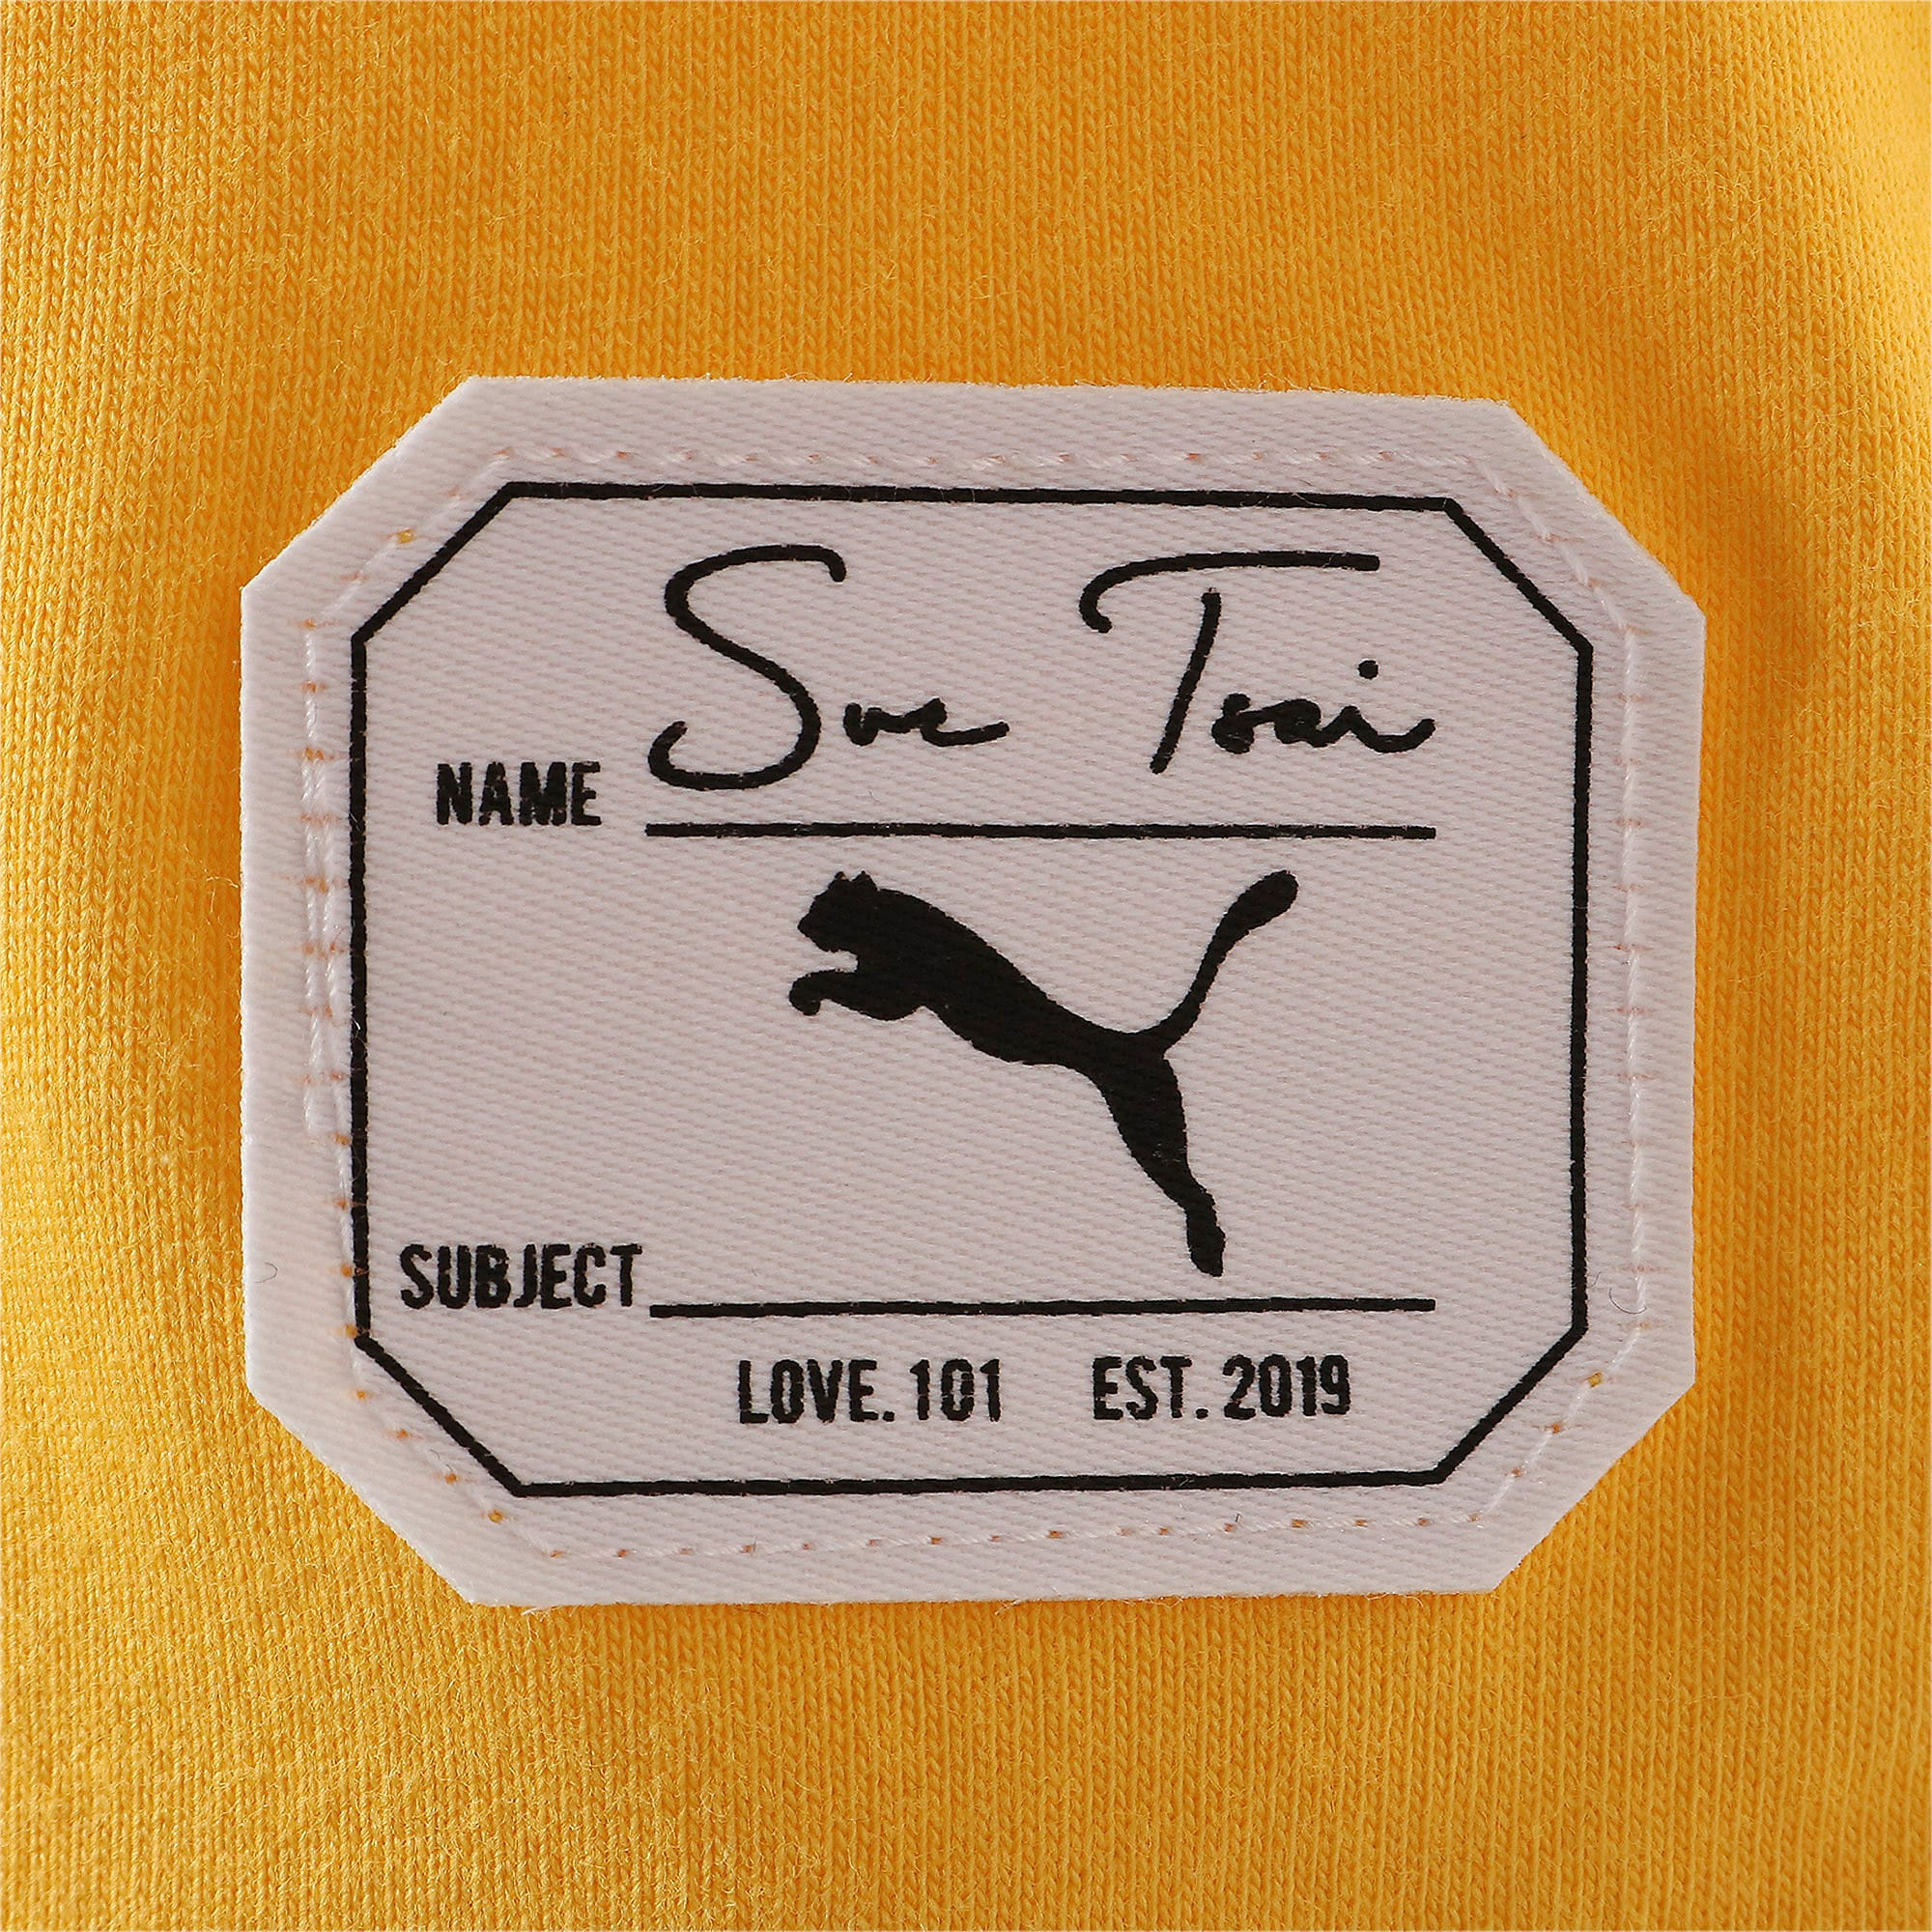 Thumbnail 4 of PUMA x SUE TSAI ウィメンズ Tシャツ, Daffodil, medium-JPN